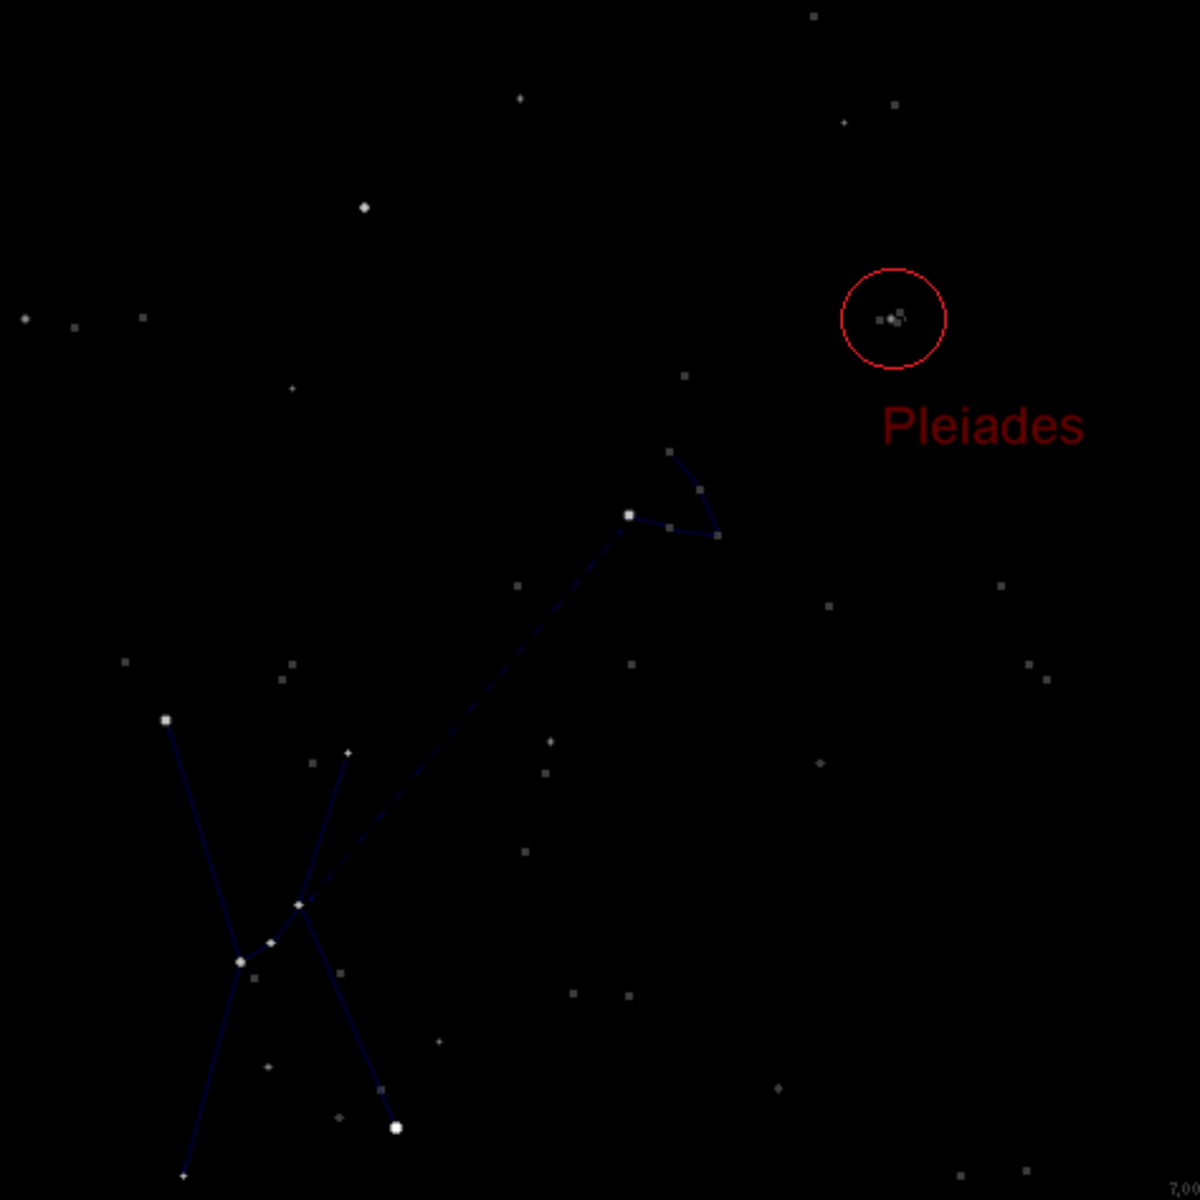 Map of Orion, Taurus, and the Pleiades